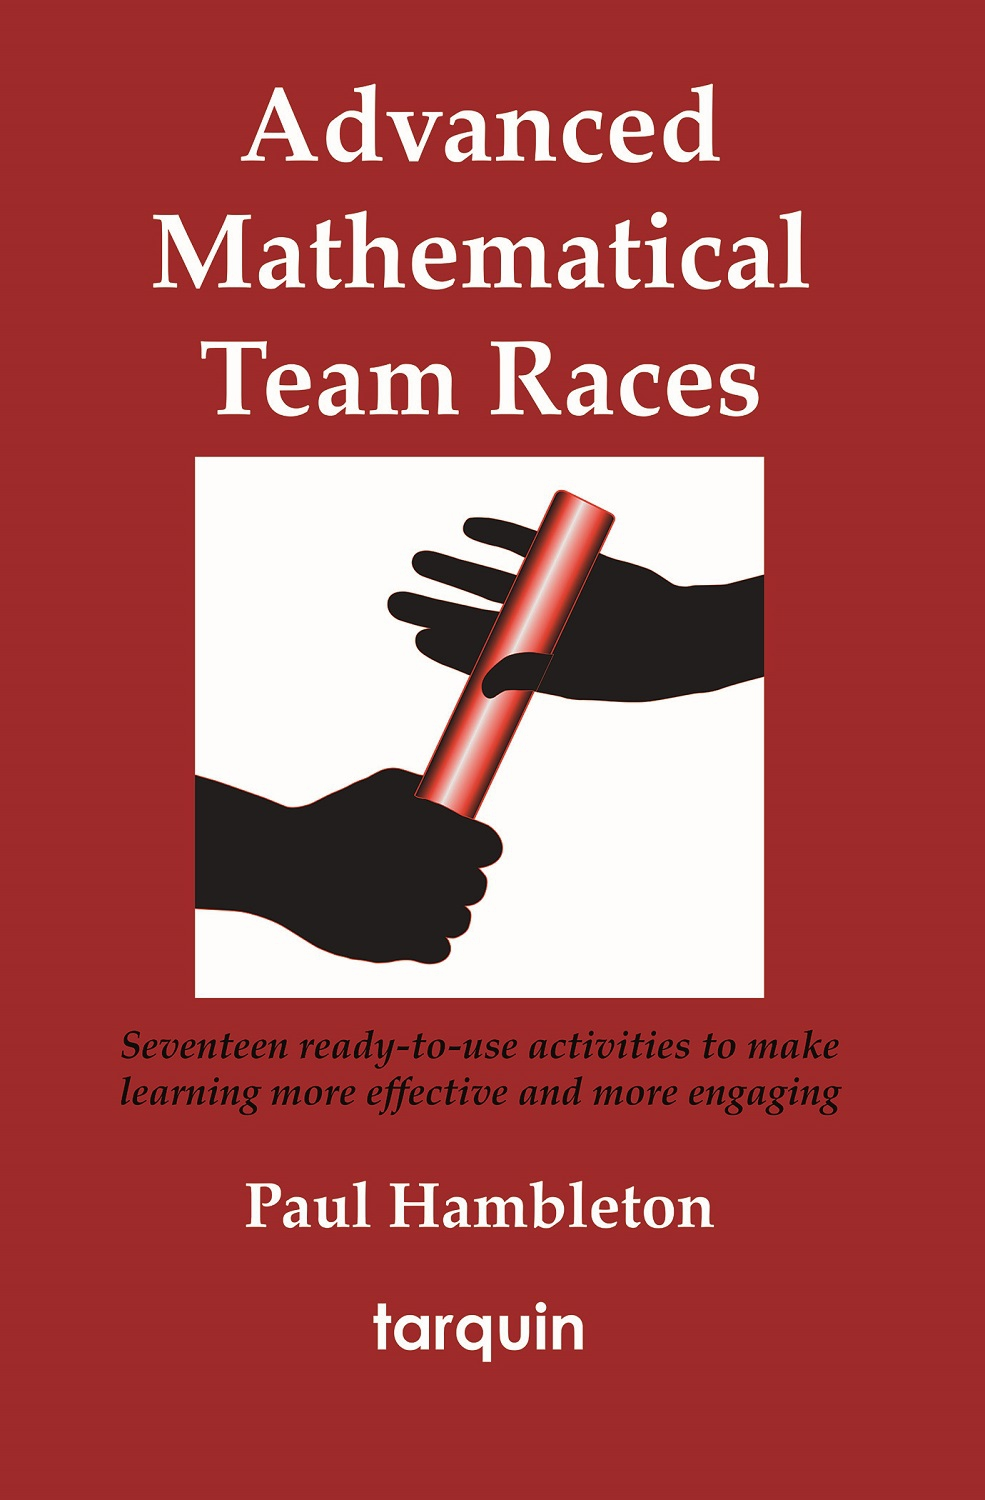 Advanced Mathematical Team Races